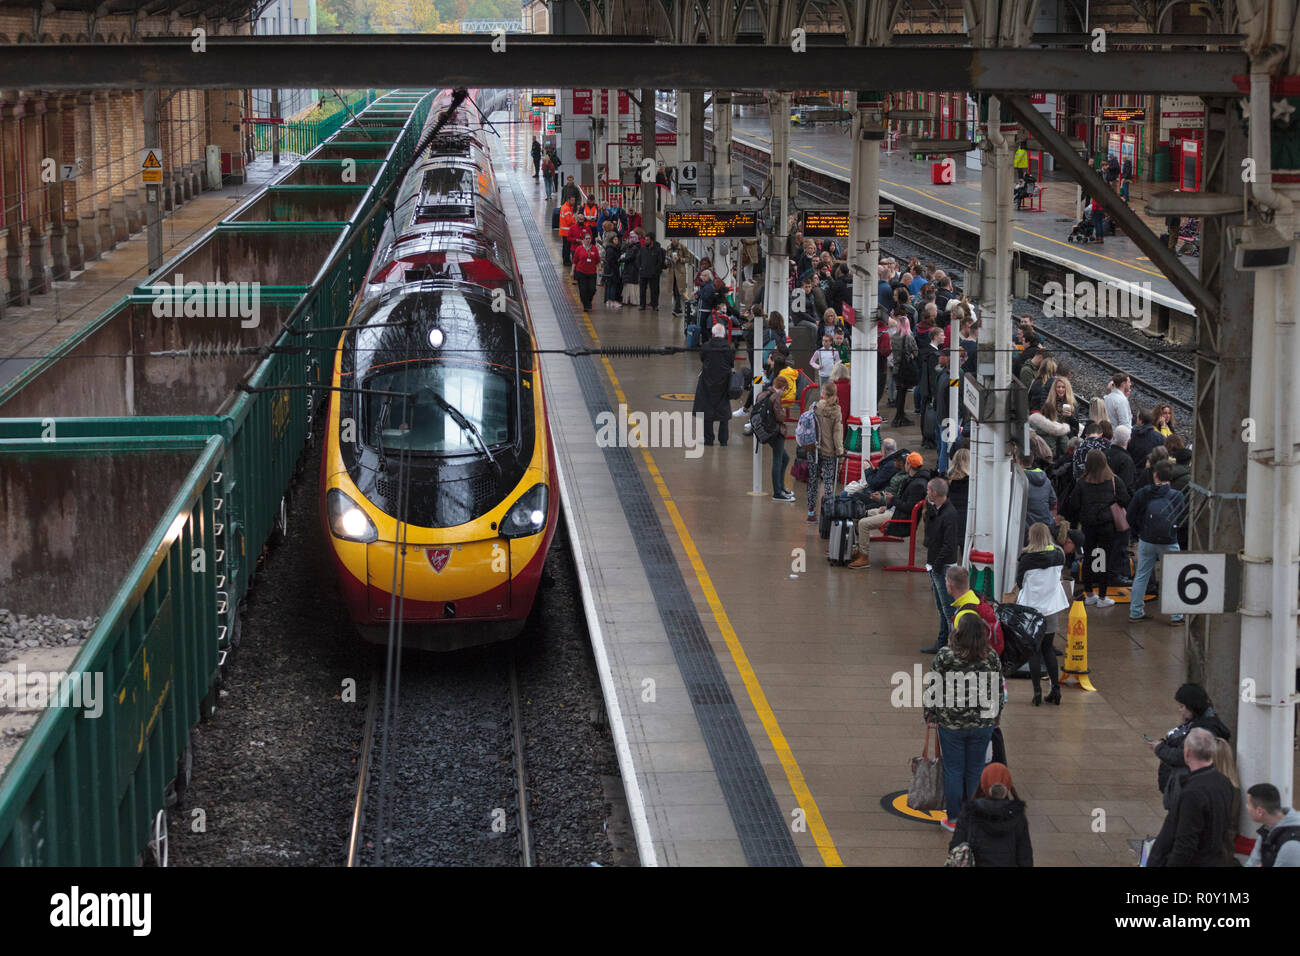 A Virgin trains pedolino train arriving at a wet Preston railway station alongside a crowded platform - Stock Image